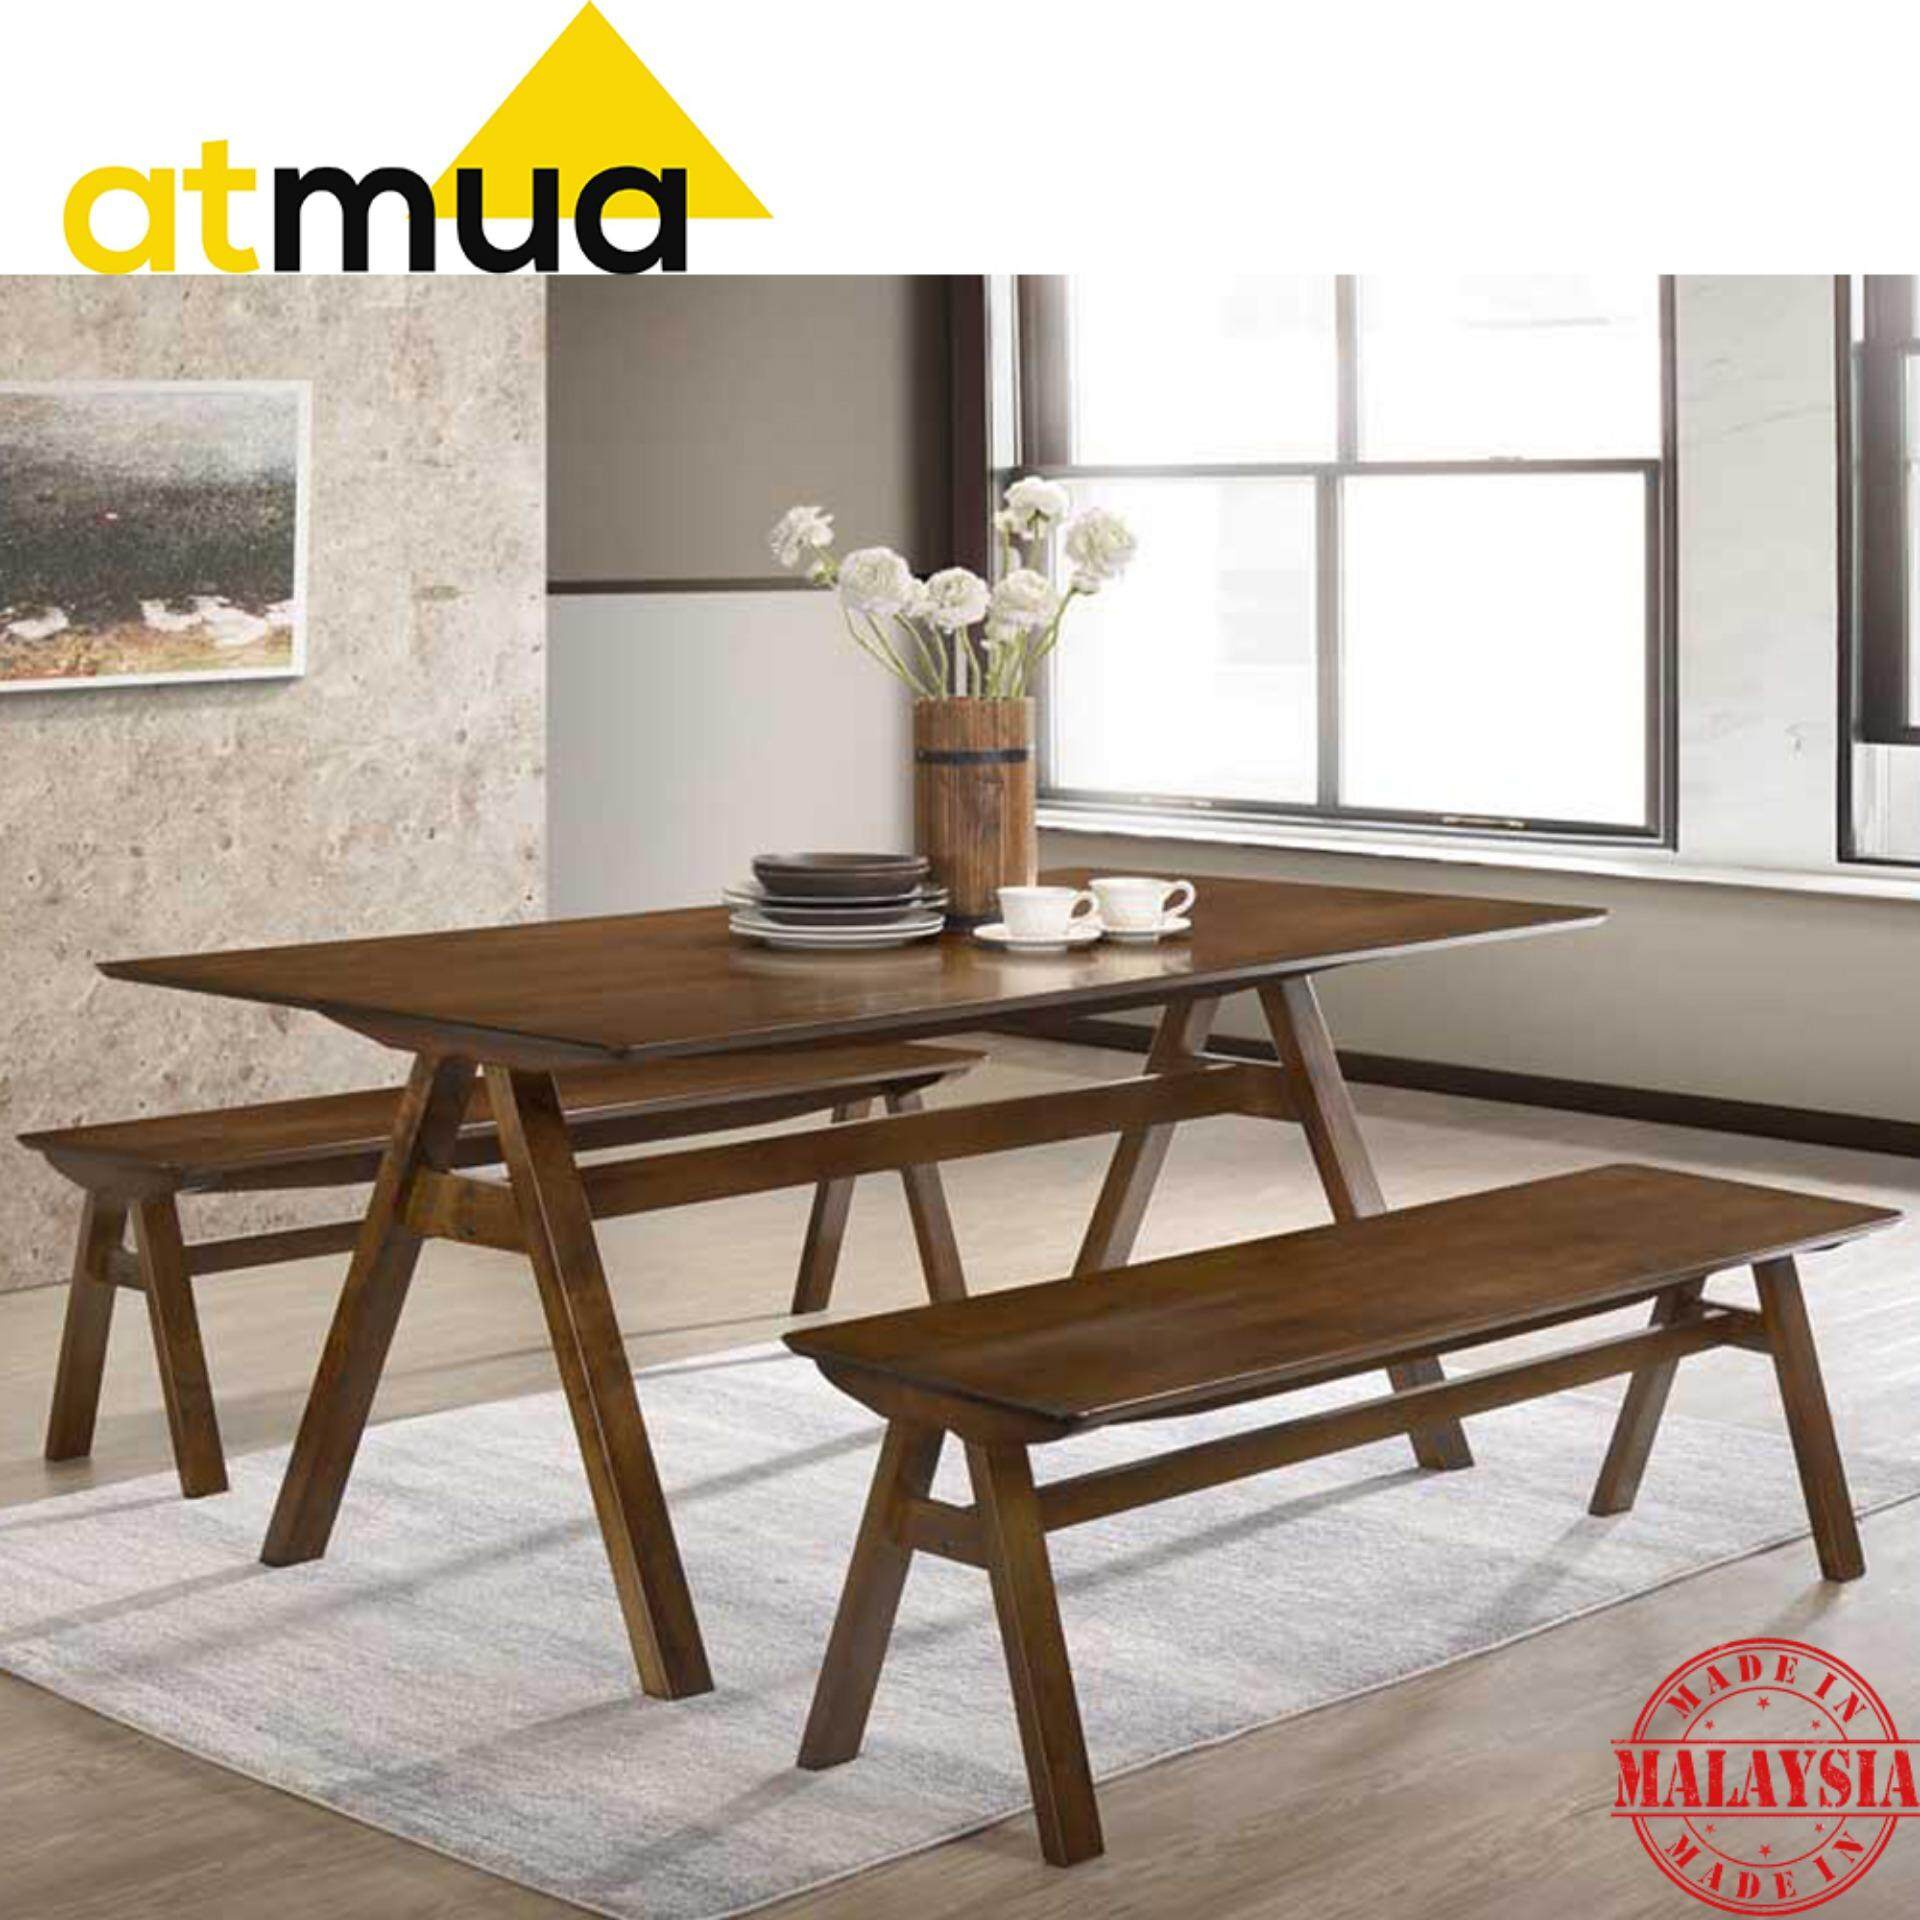 Atmua Vivo Dining Set (1 Table + 2 Bench Chair) [Full Solid Rubber Wood] 6 Feet Length *Suitable For Caf 6 Seater